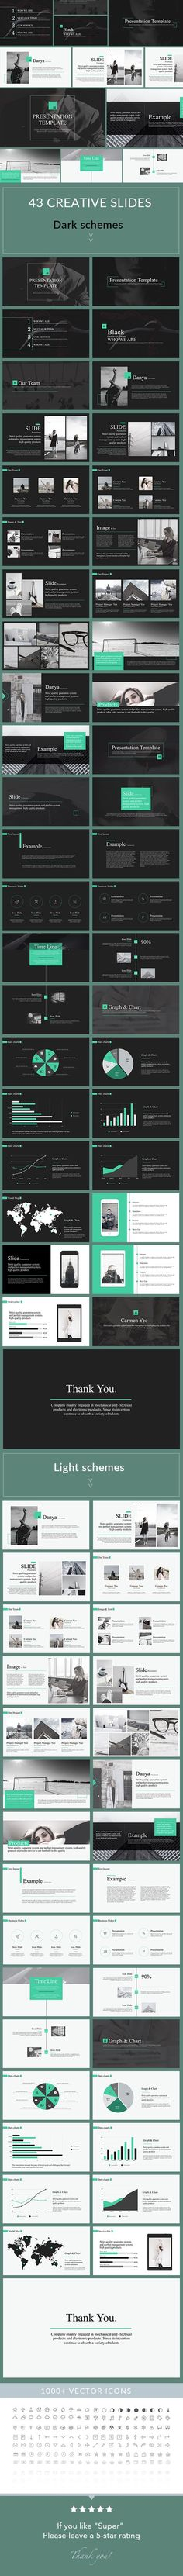 "Mark - Clean & Simple Keynote Template. Download here: <a href=""https://graphicriver.net/item/mark-clean-simple-keynote-template/17560225?ref=ksioks"" rel=""nofollow"" target=""_blank"">graphicriver.net/...</a>"